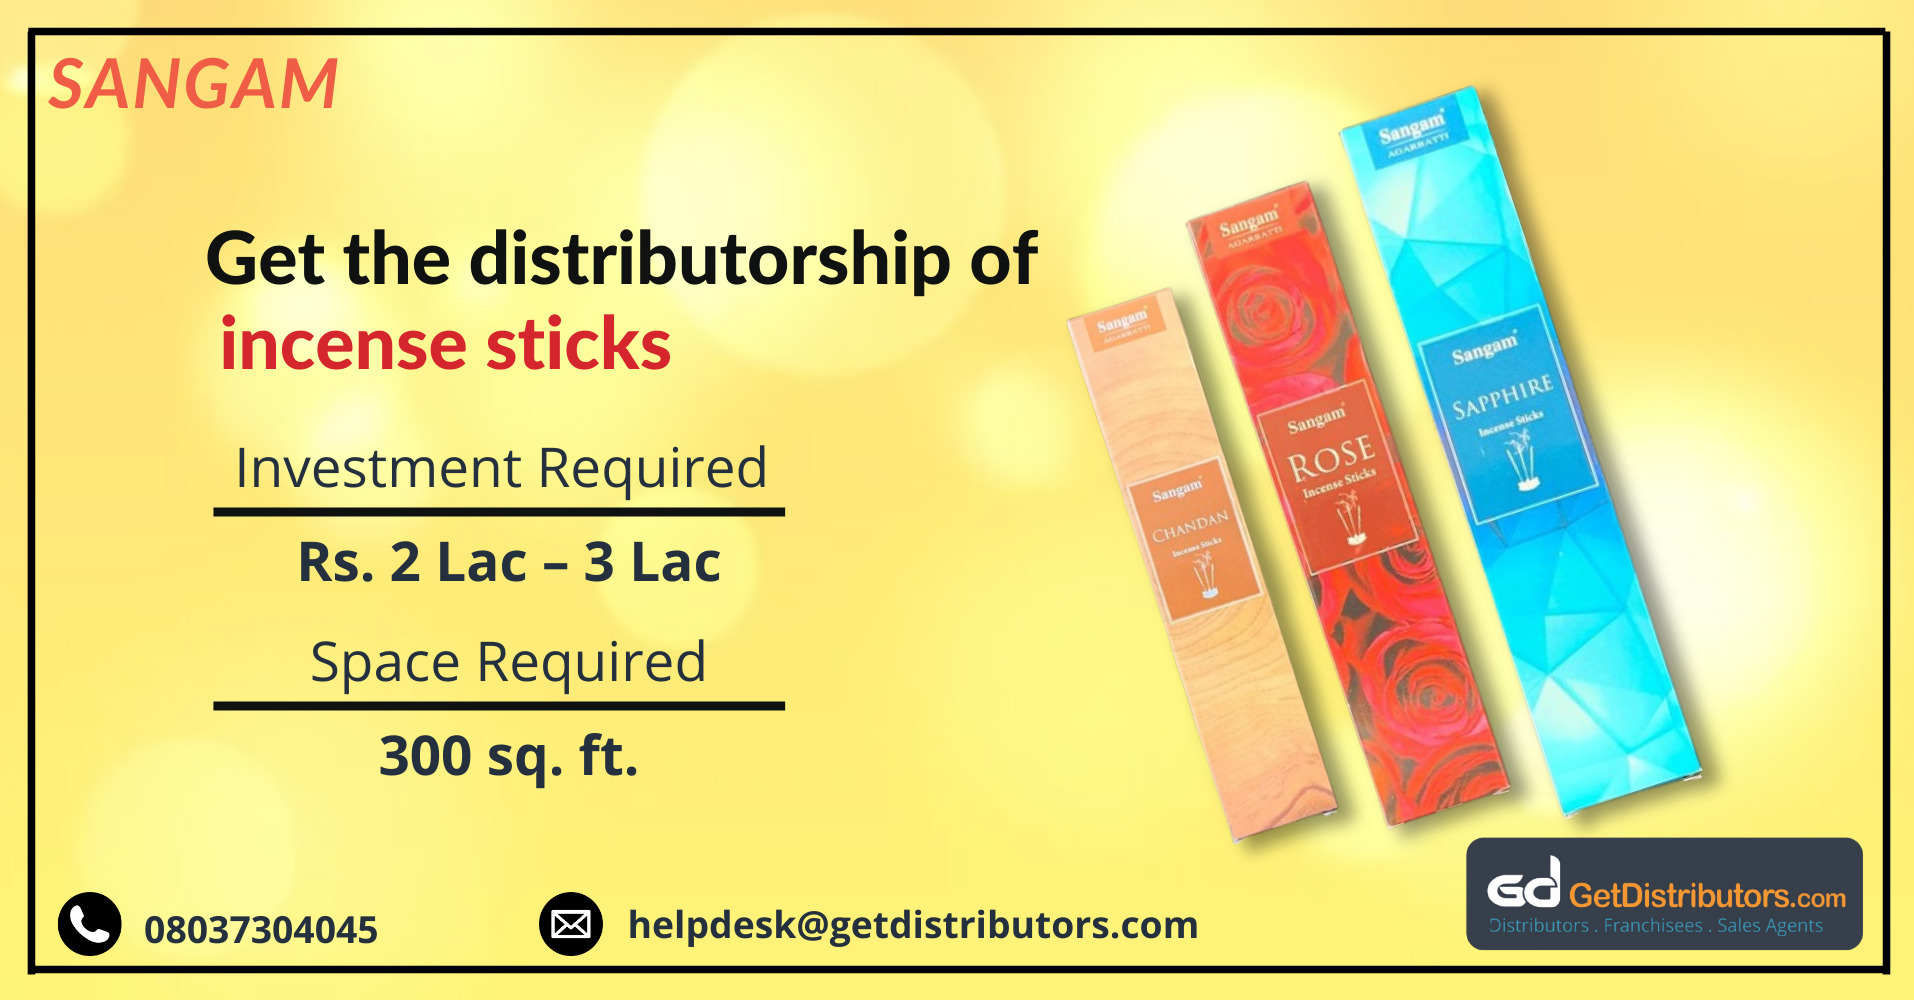 Finest quality incense sticks for distribution